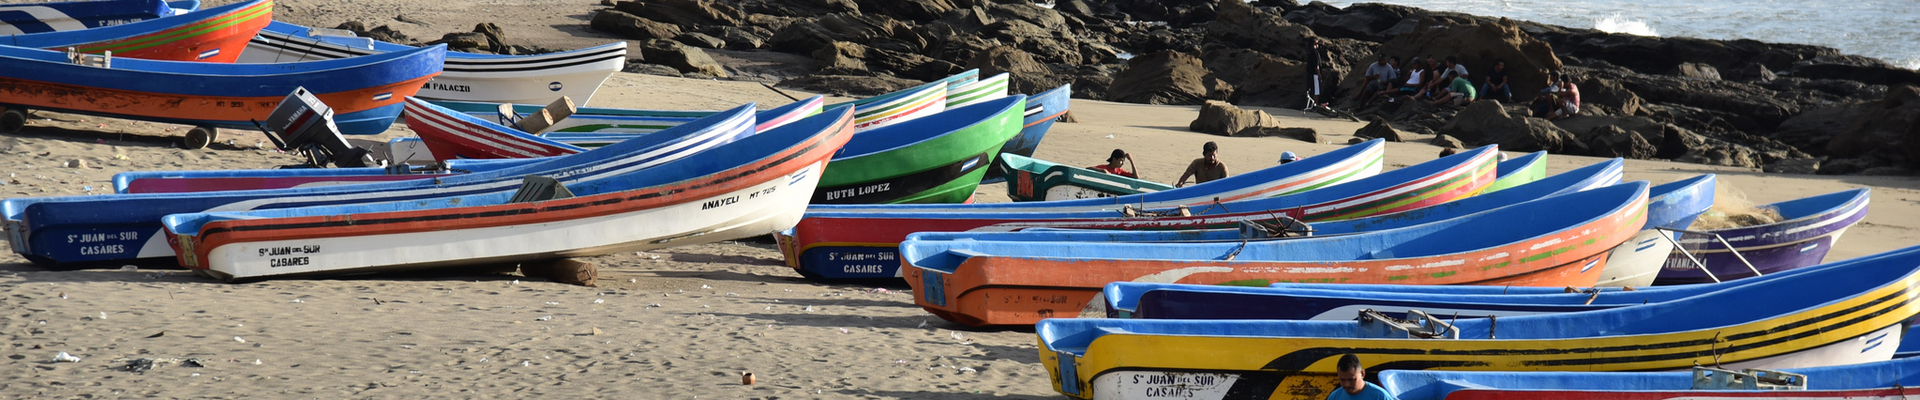 boats on the beach in Nicaragua